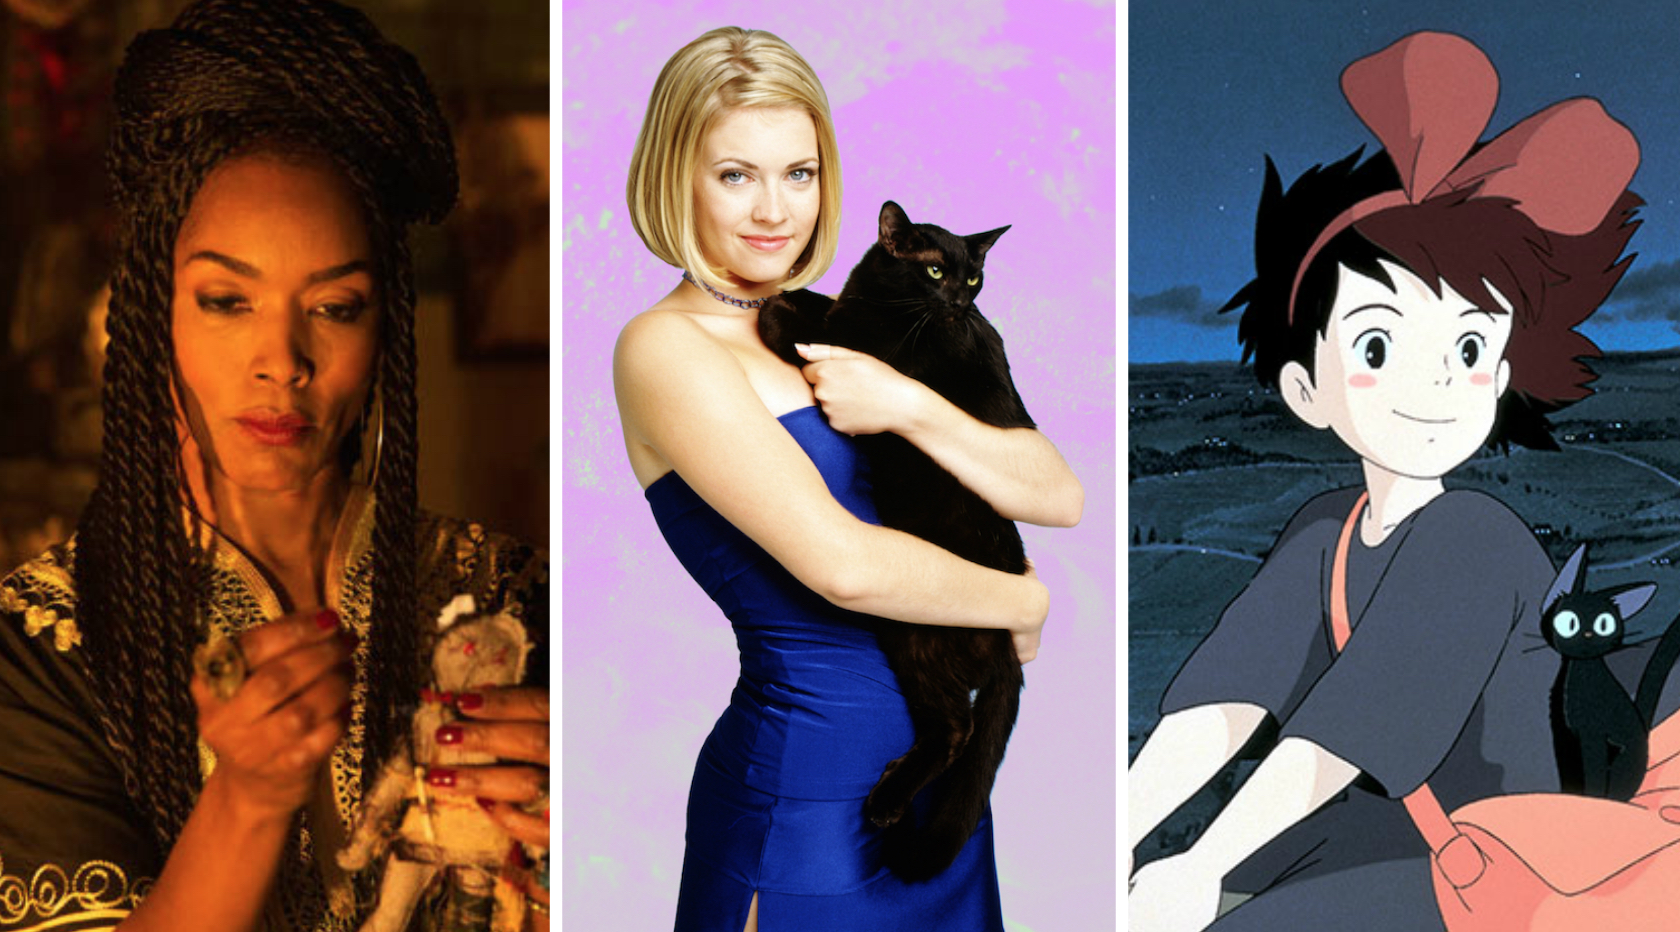 Here's which fictional witch you would be, based on your zodiac sign